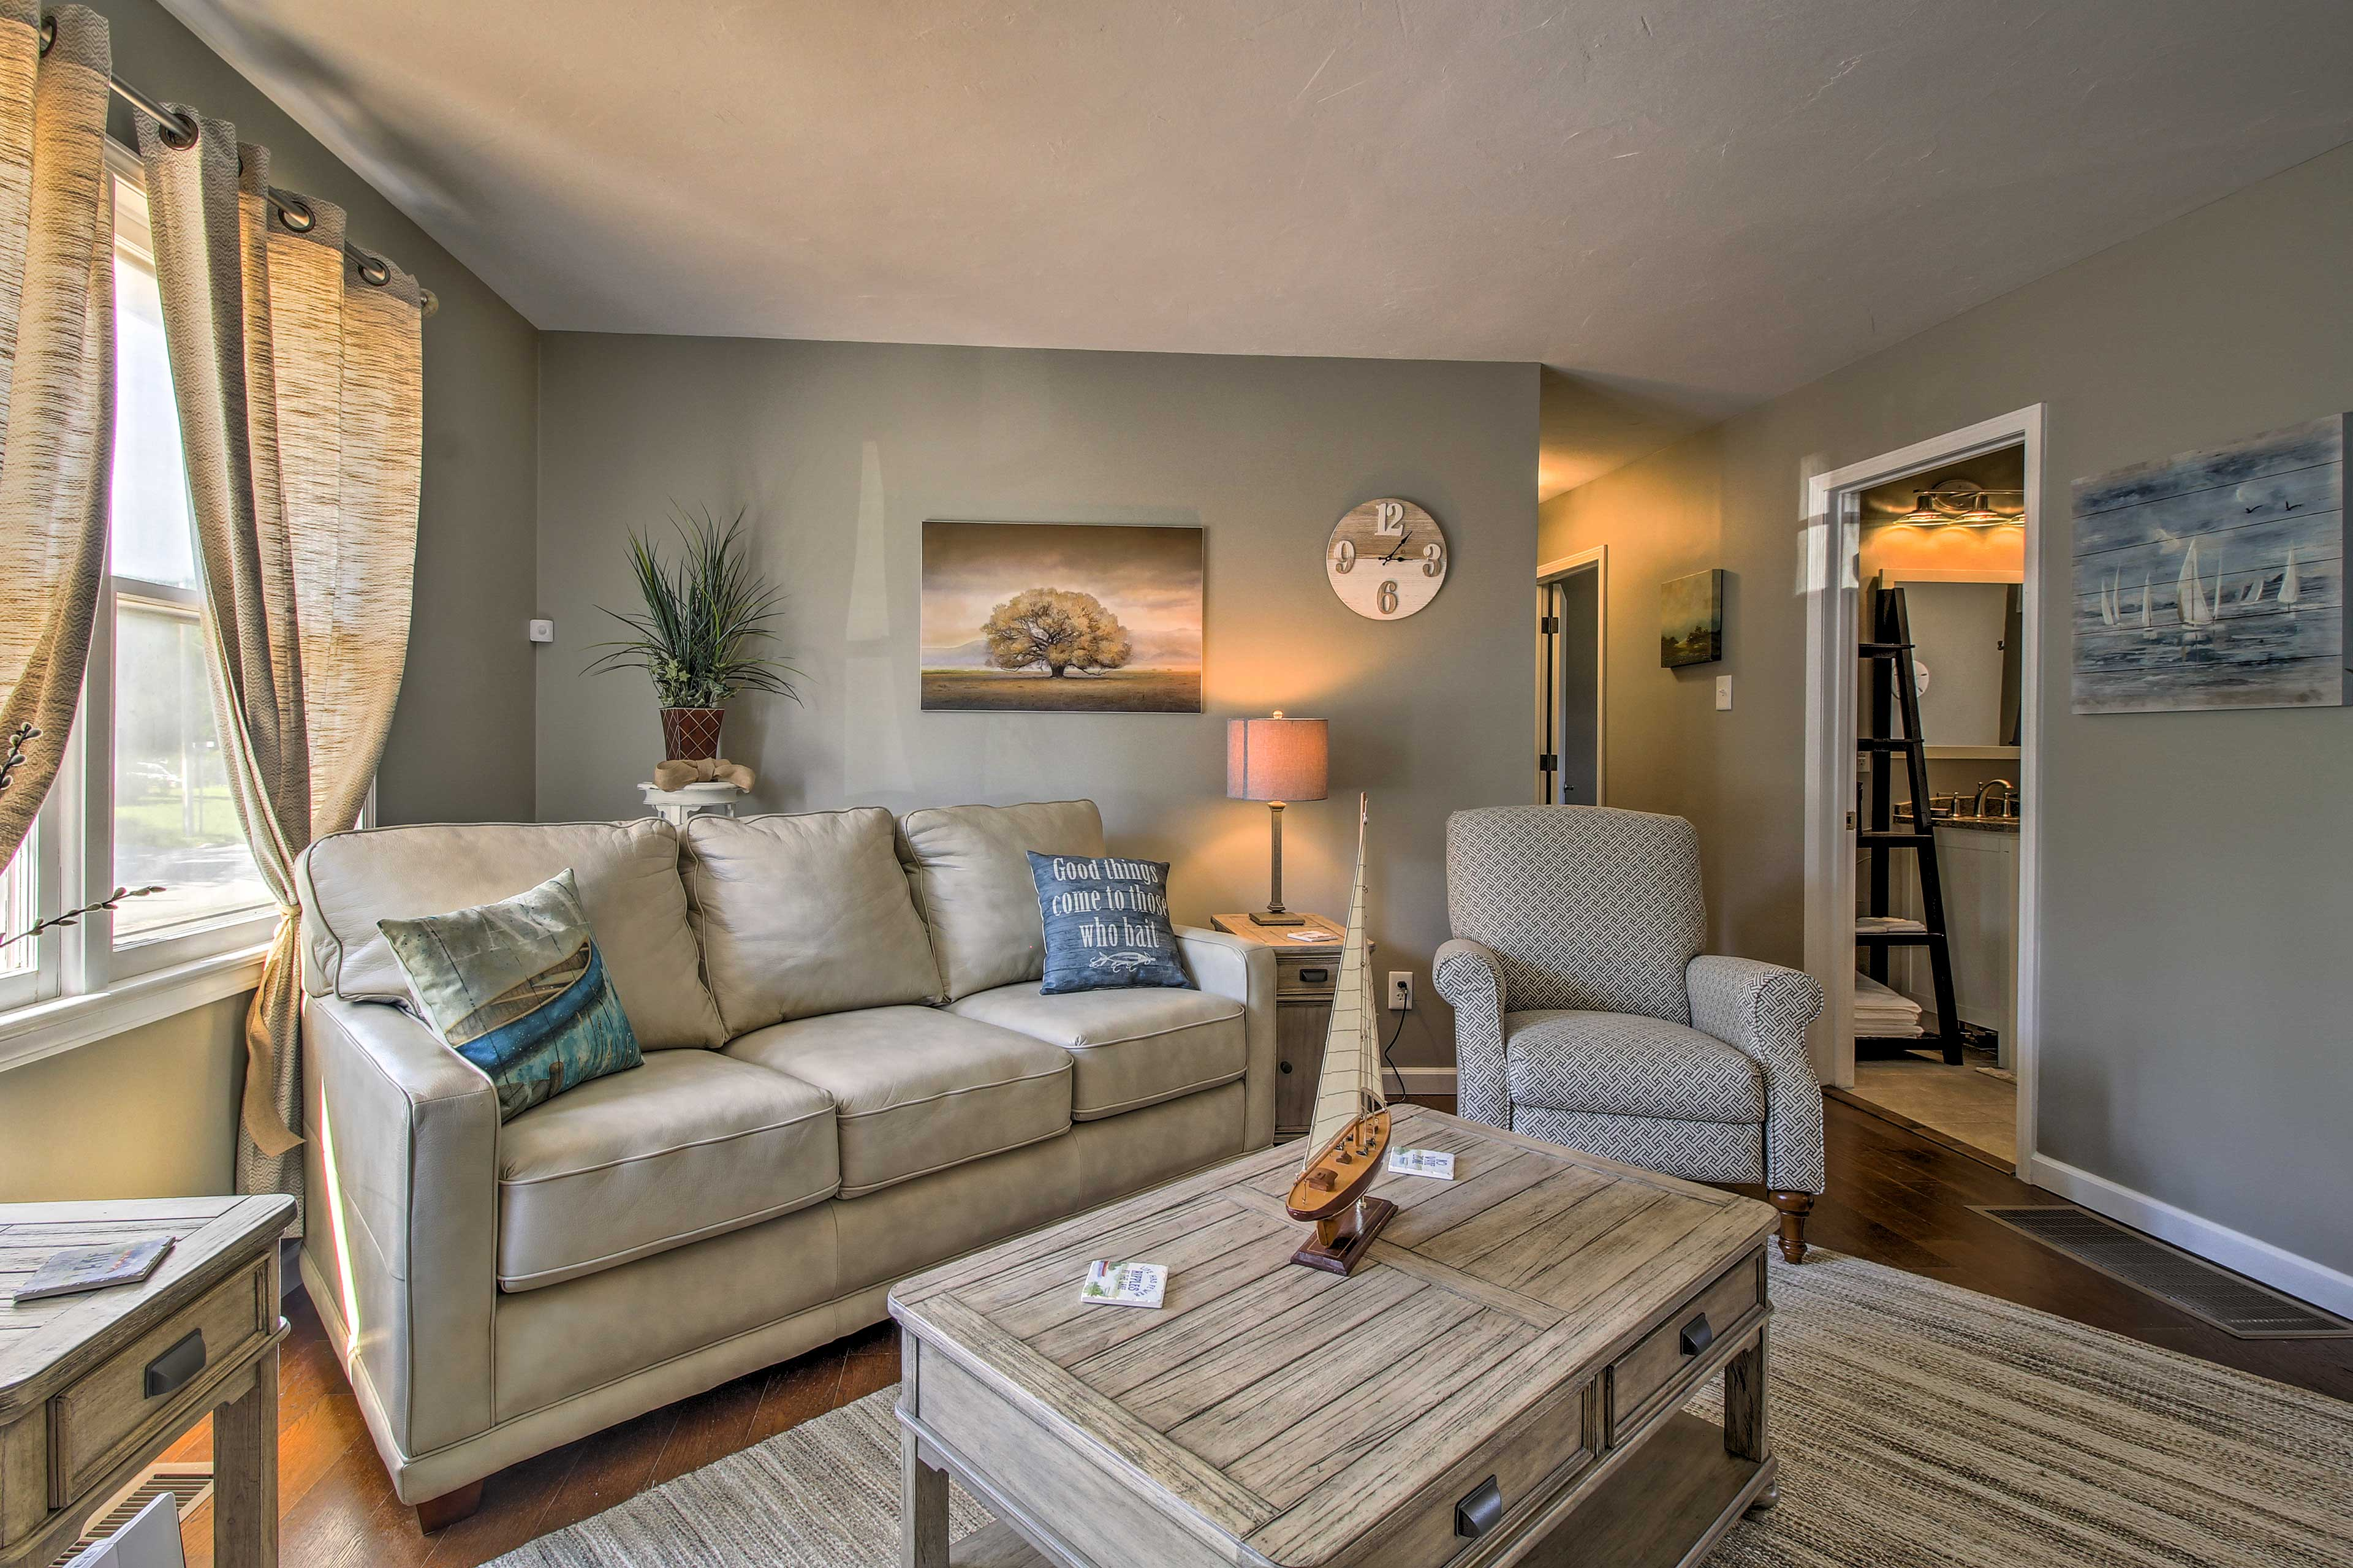 Your group of up to 8 guests will love this cozy home base in Stockton!